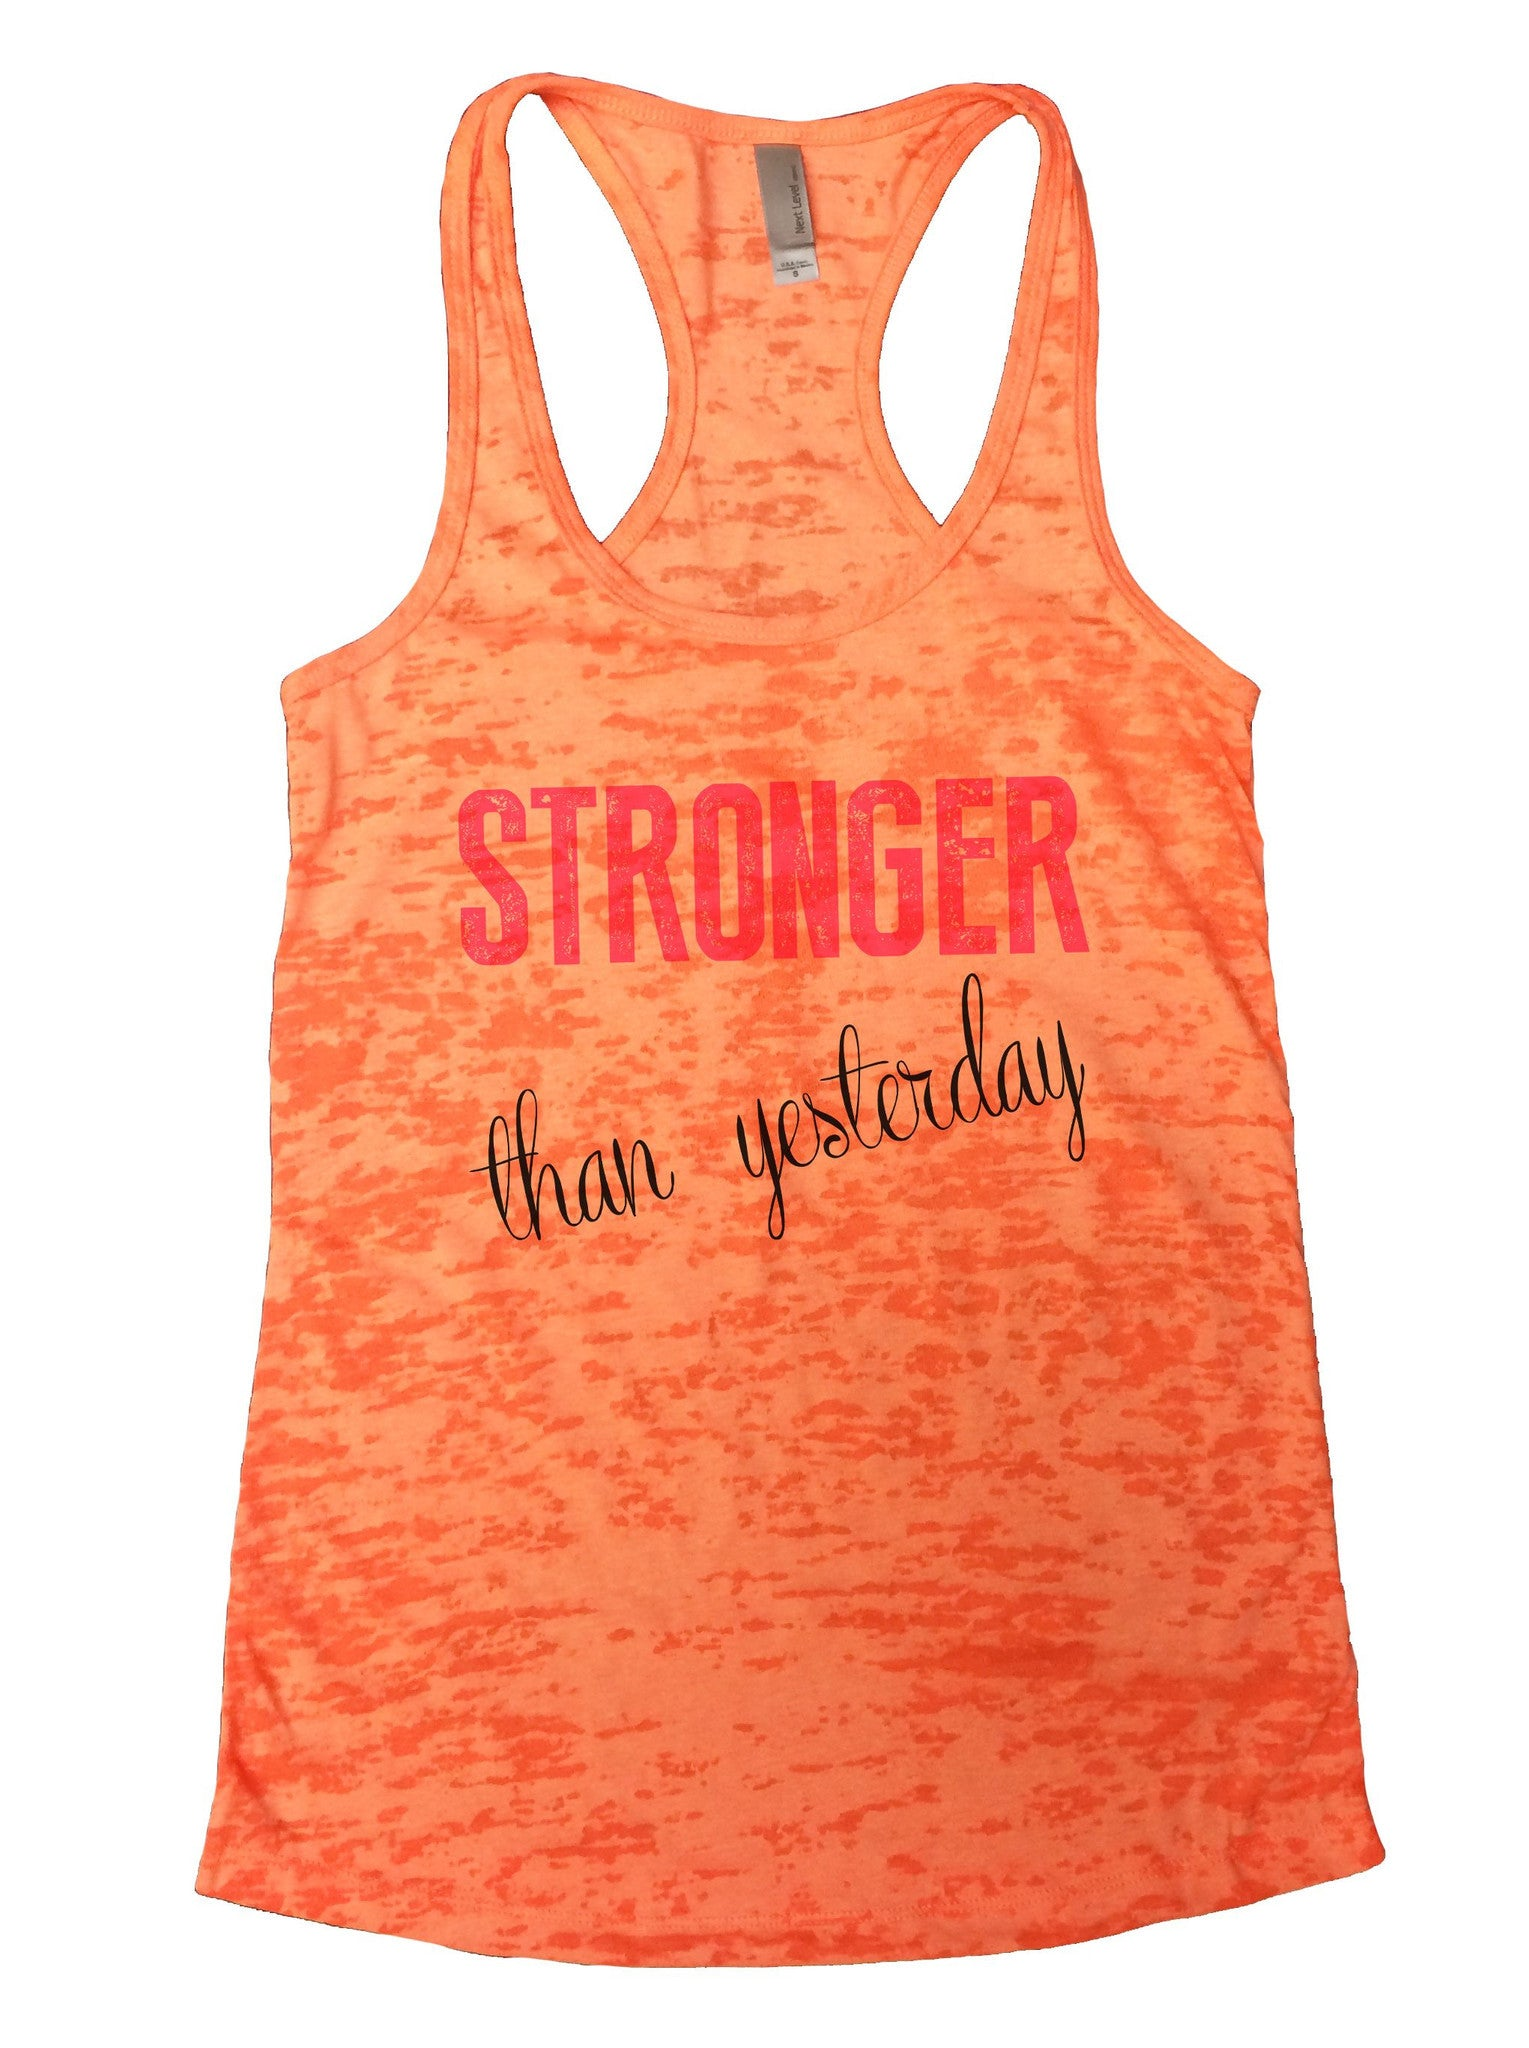 Stronger Than Yesterday Burnout Tank Top By BurnoutTankTops.com - 768 - Funny Shirts Tank Tops Burnouts and Triblends  - 3